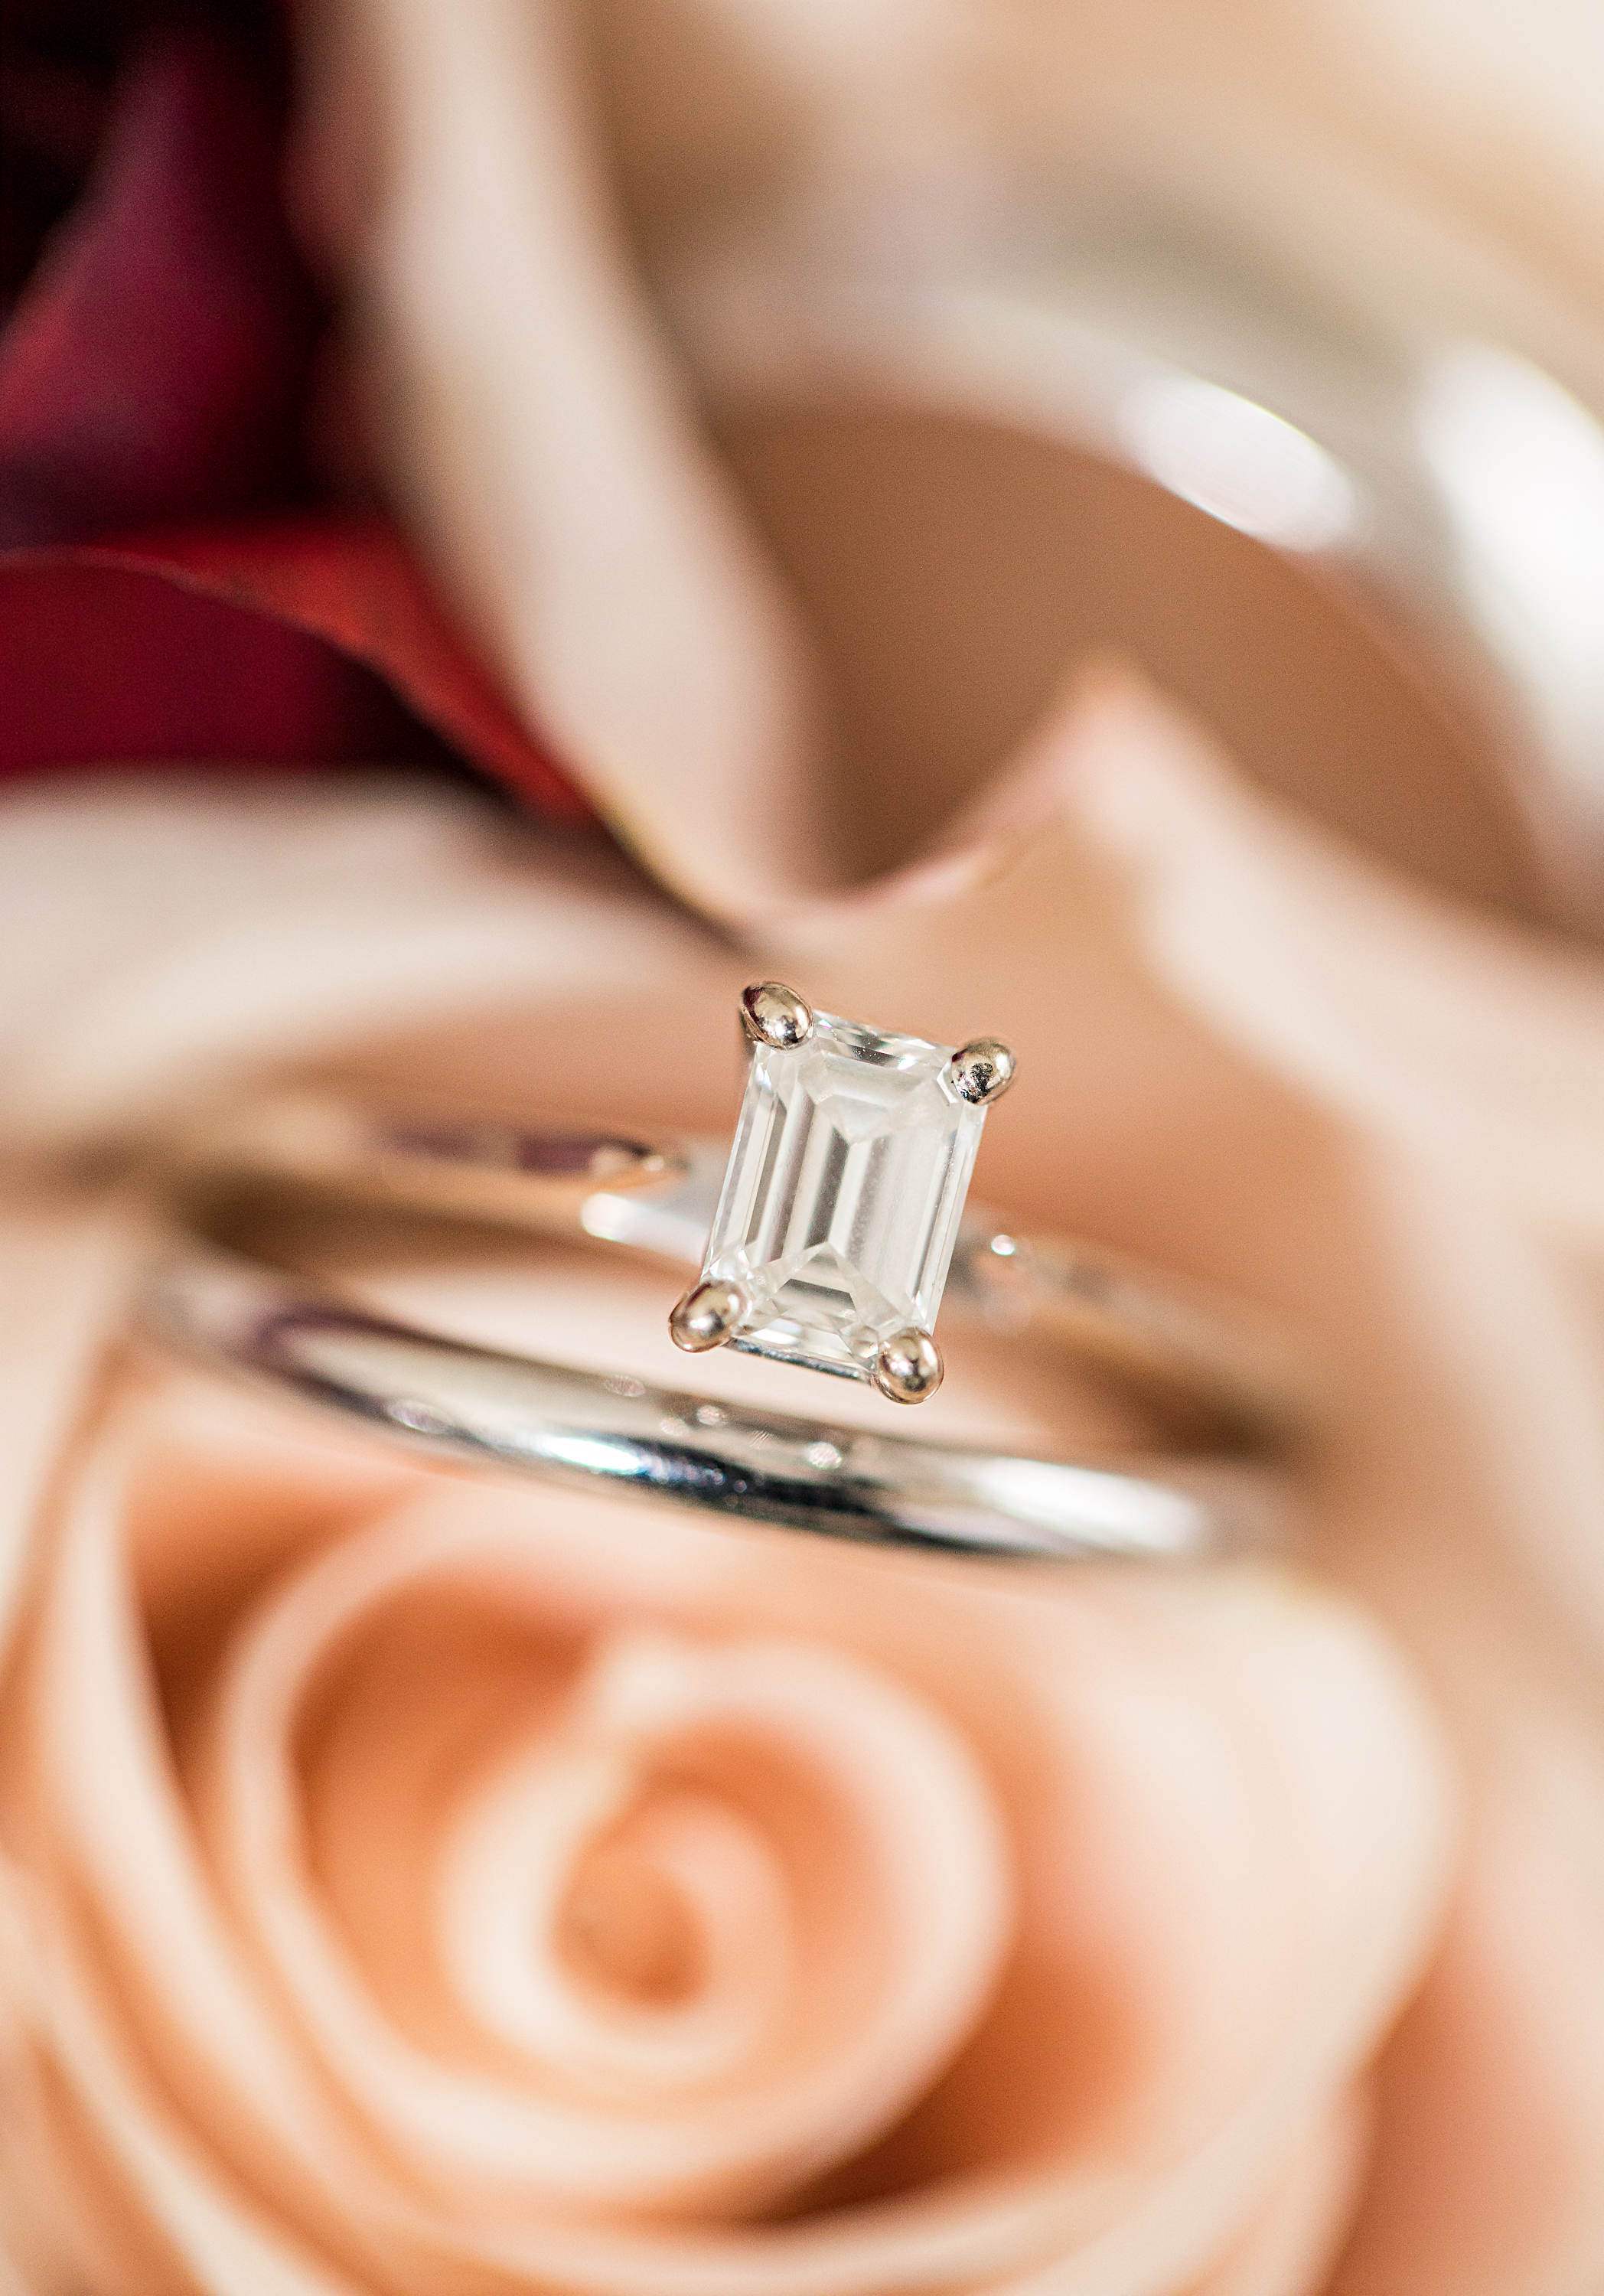 White gold wedding rings photographed inside the bride's flower bouquet of soft pink roses and lillies.